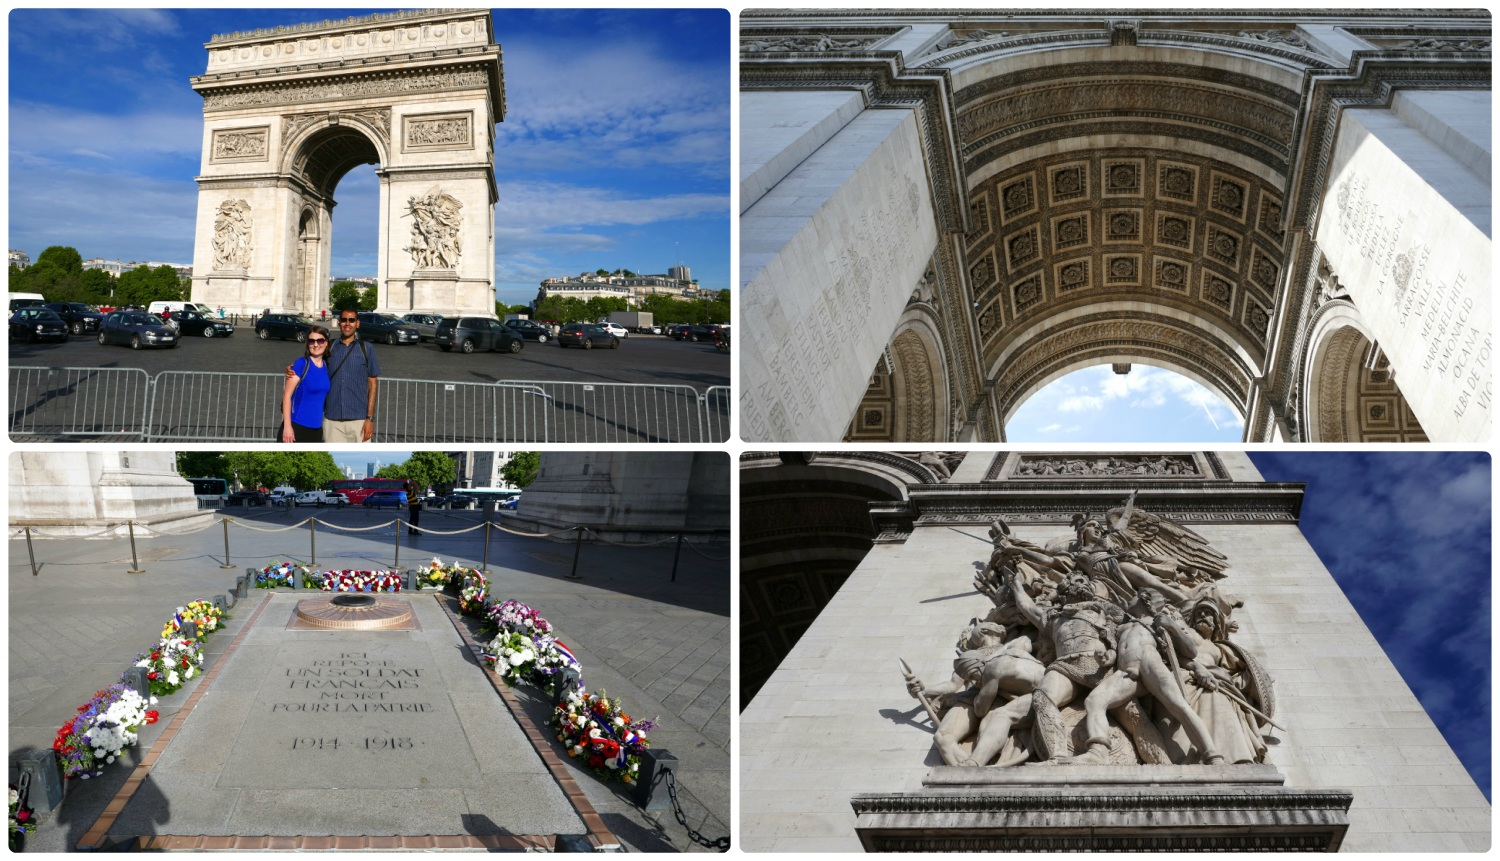 Clockwise (from the top): Us in front of the Arc de Triomphe, the center of the archway, one of the sculptures on the arch, the Tomb of the Unknown Soldier and eternal flame.